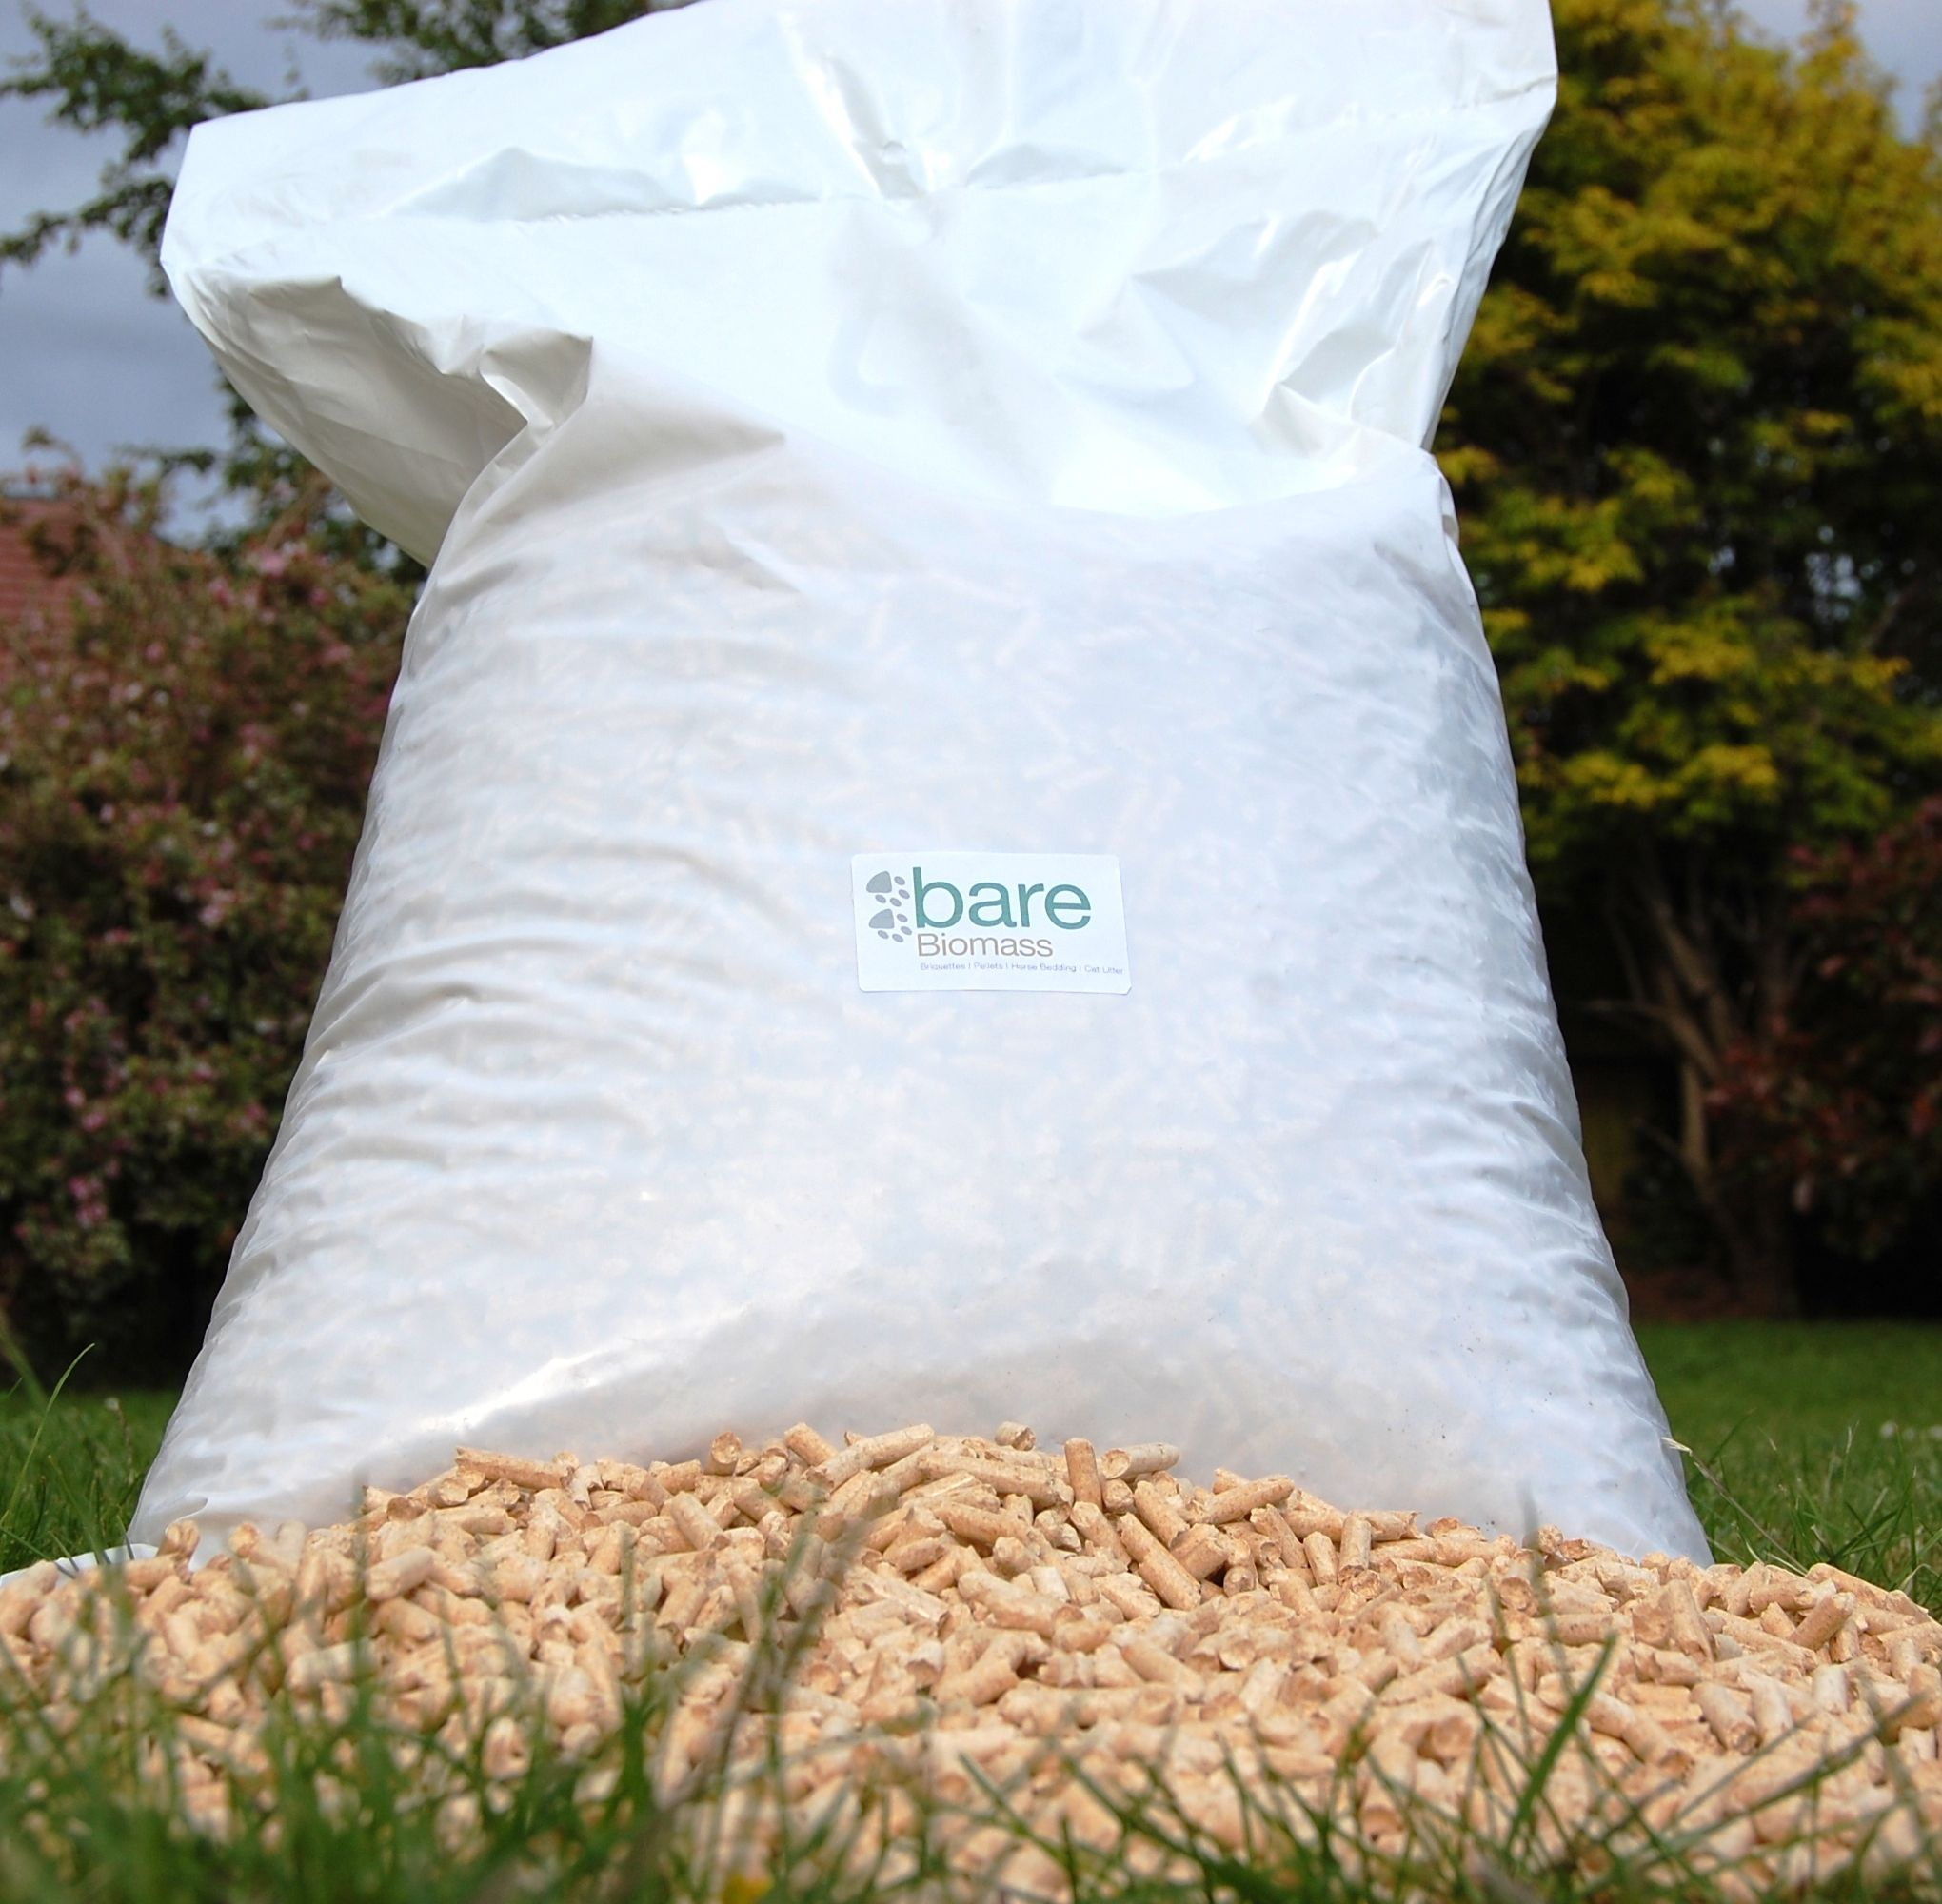 15kg bag of wood pellets for horse bedding. Equates to